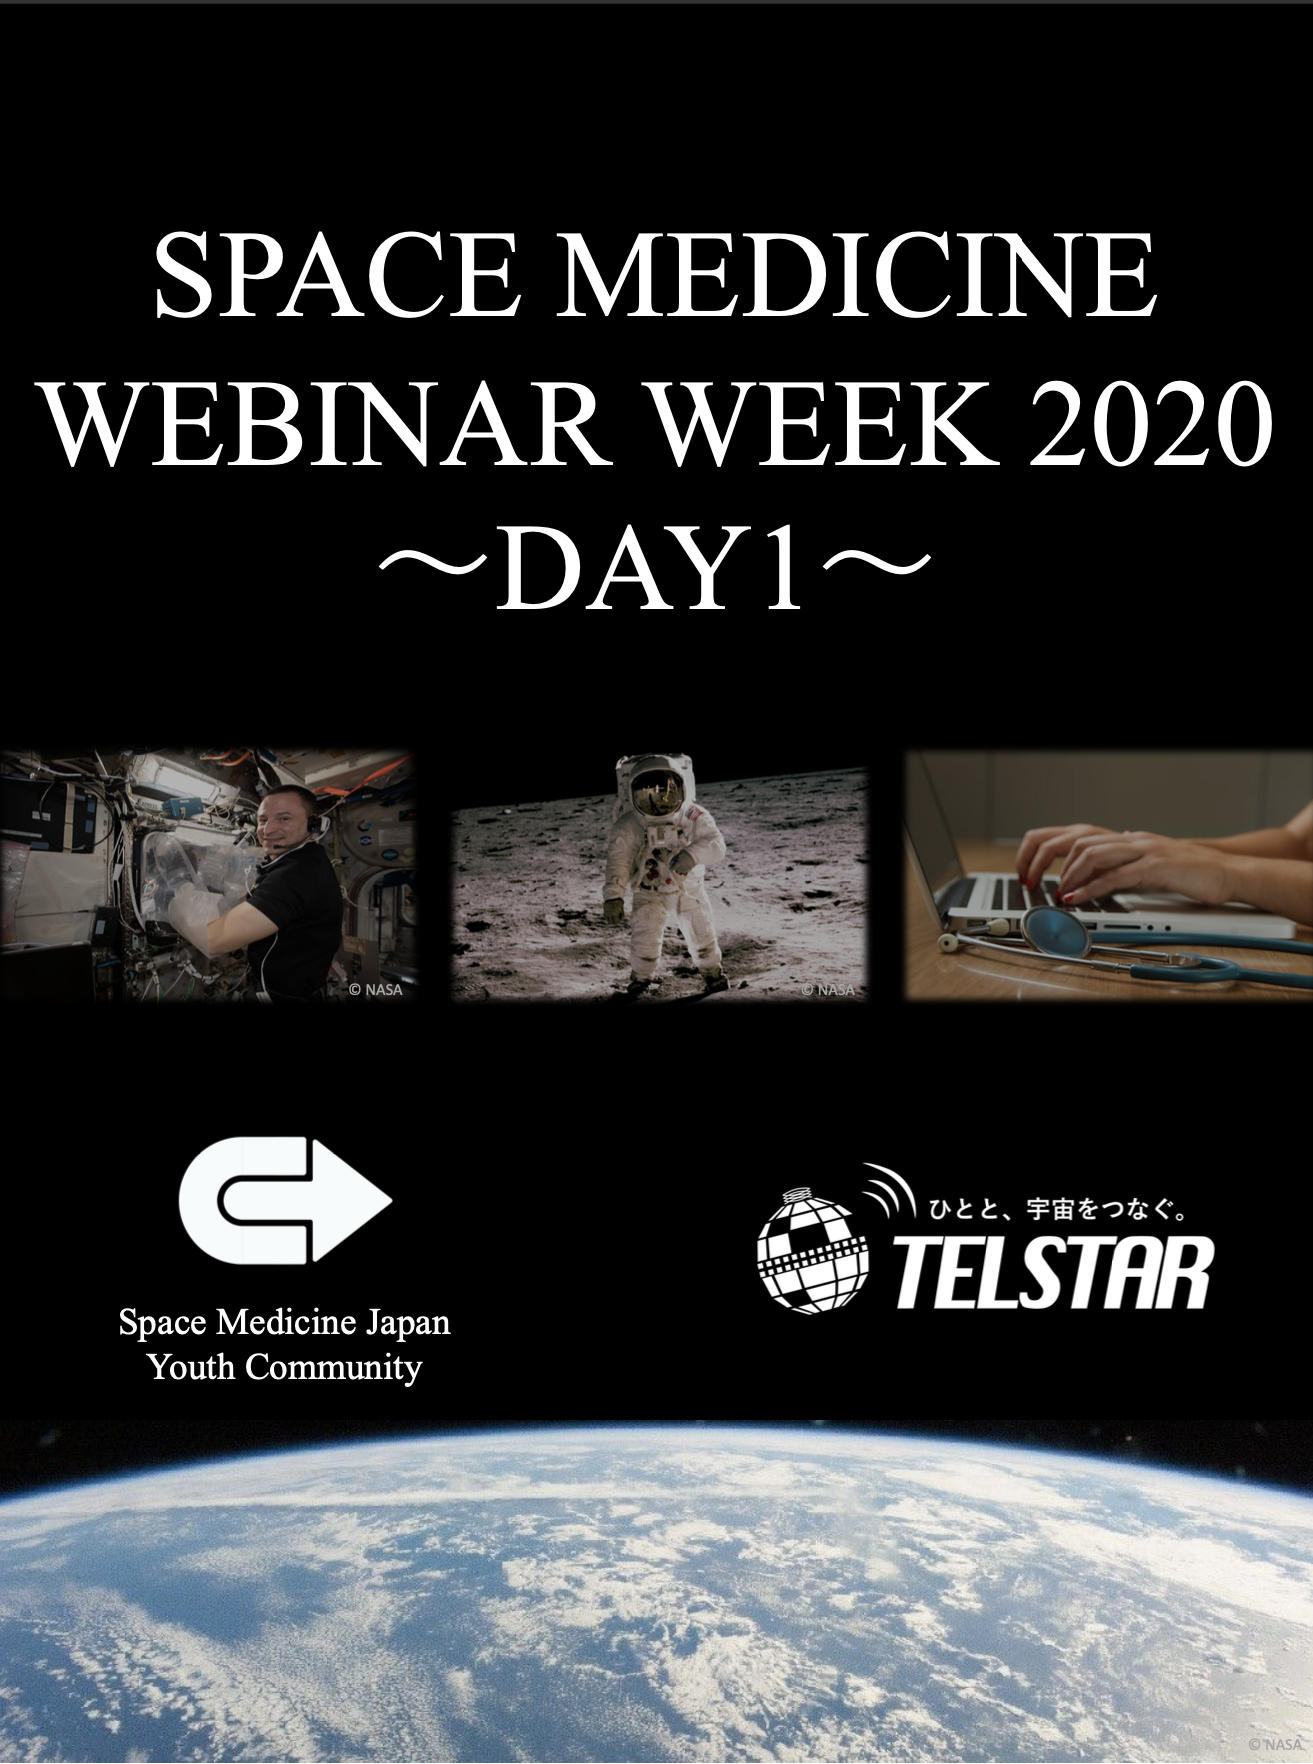 「医」を「宇宙」で。 〜SPACE MEDICINE WEBINAR WEEK 2020 DAY1 〜